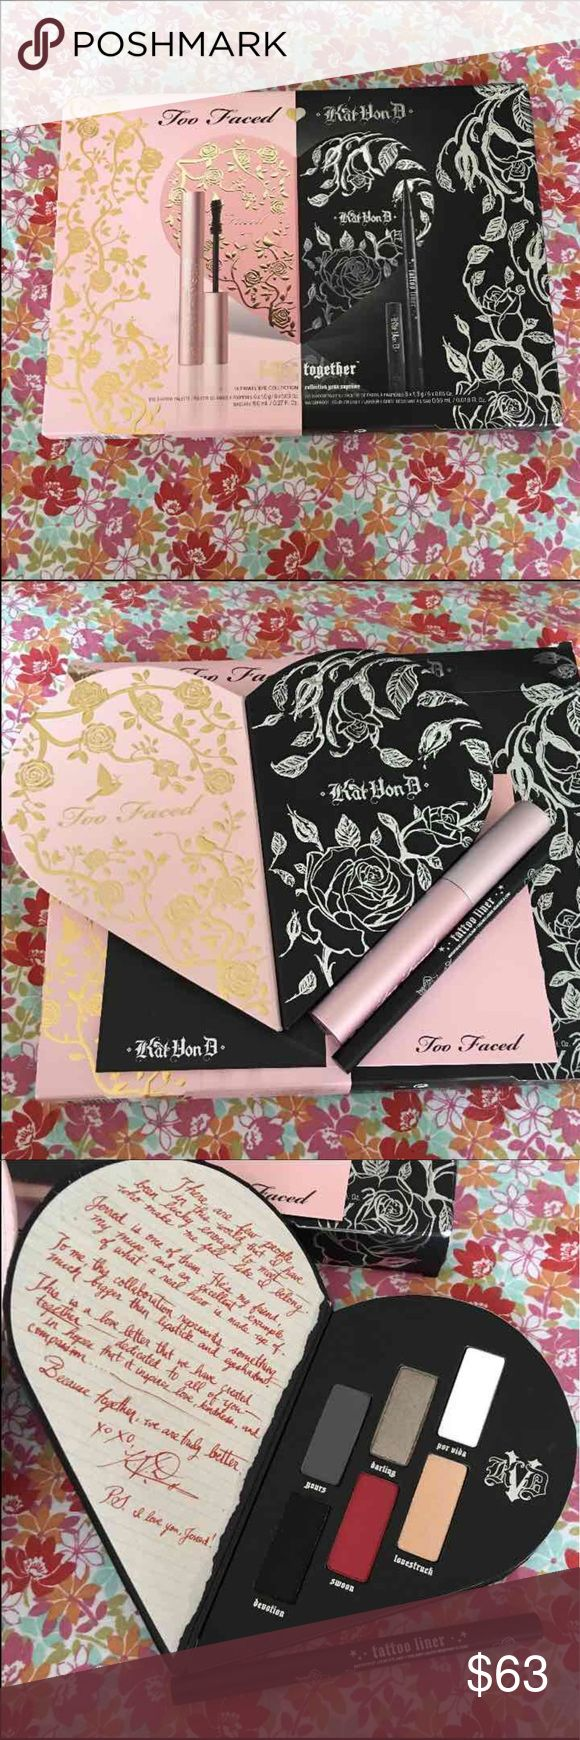 Too Faced Kat Van D Better Together Authentic • Brand New • Never Used • limited Edition Palette Too Faced Makeup Eyeshadow